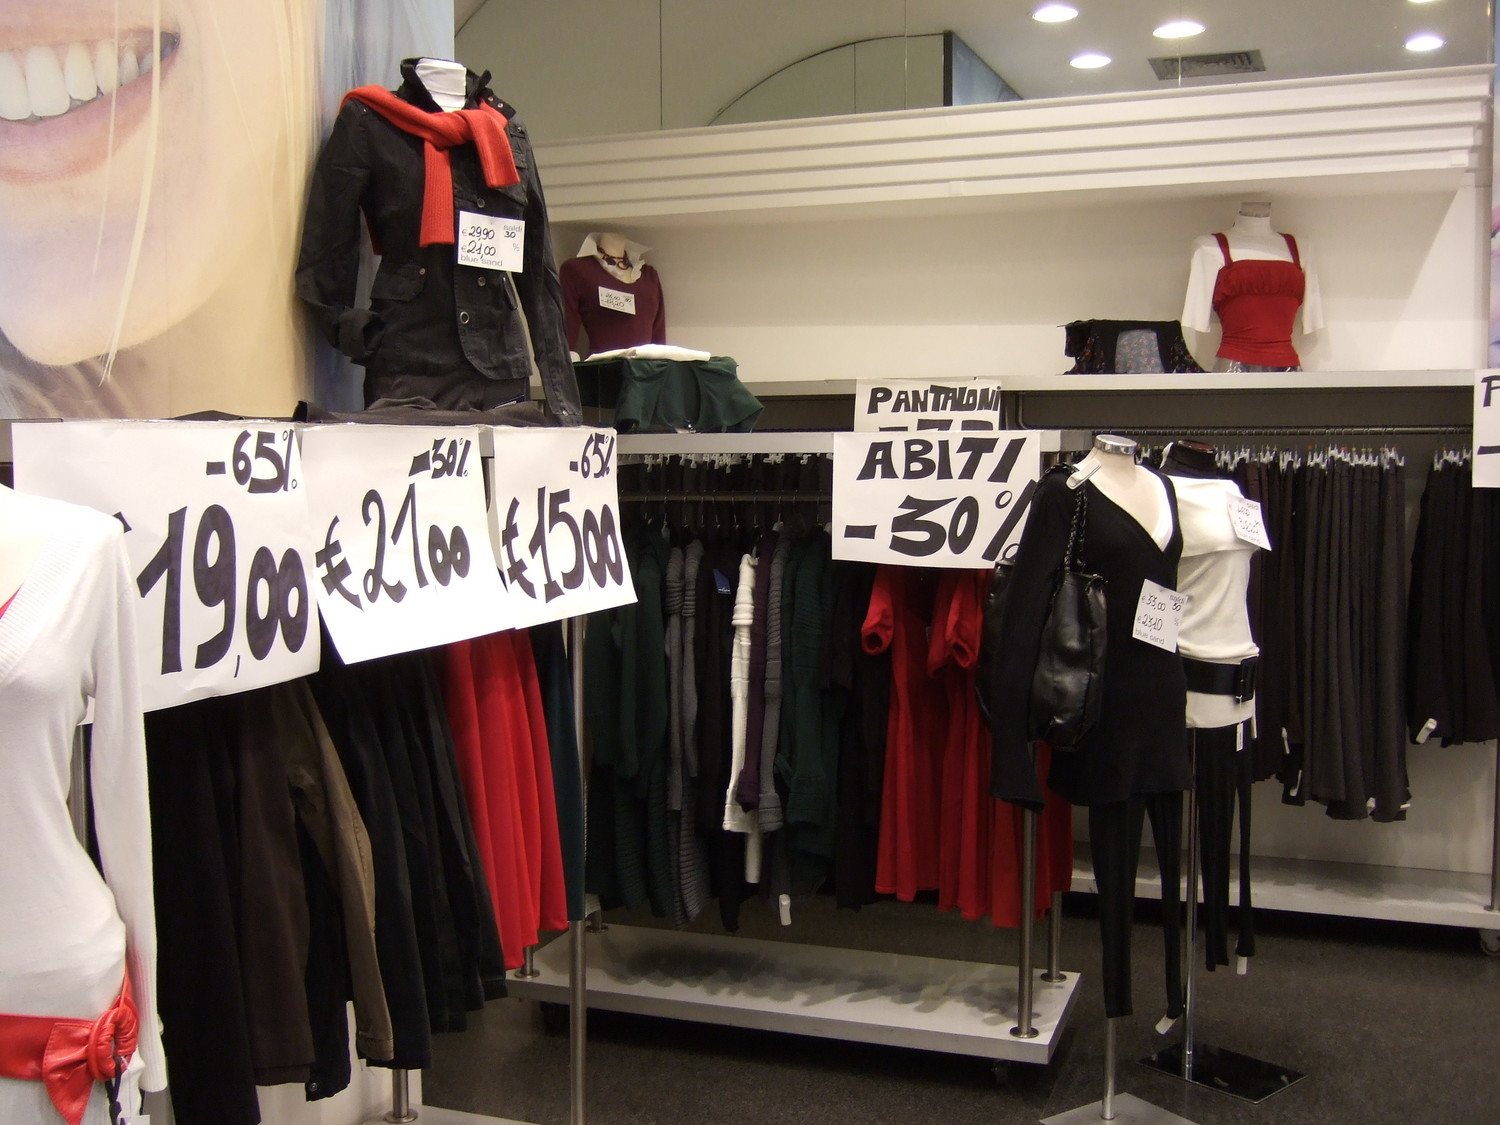 93_Usual_sales_in_the_shops__Rome